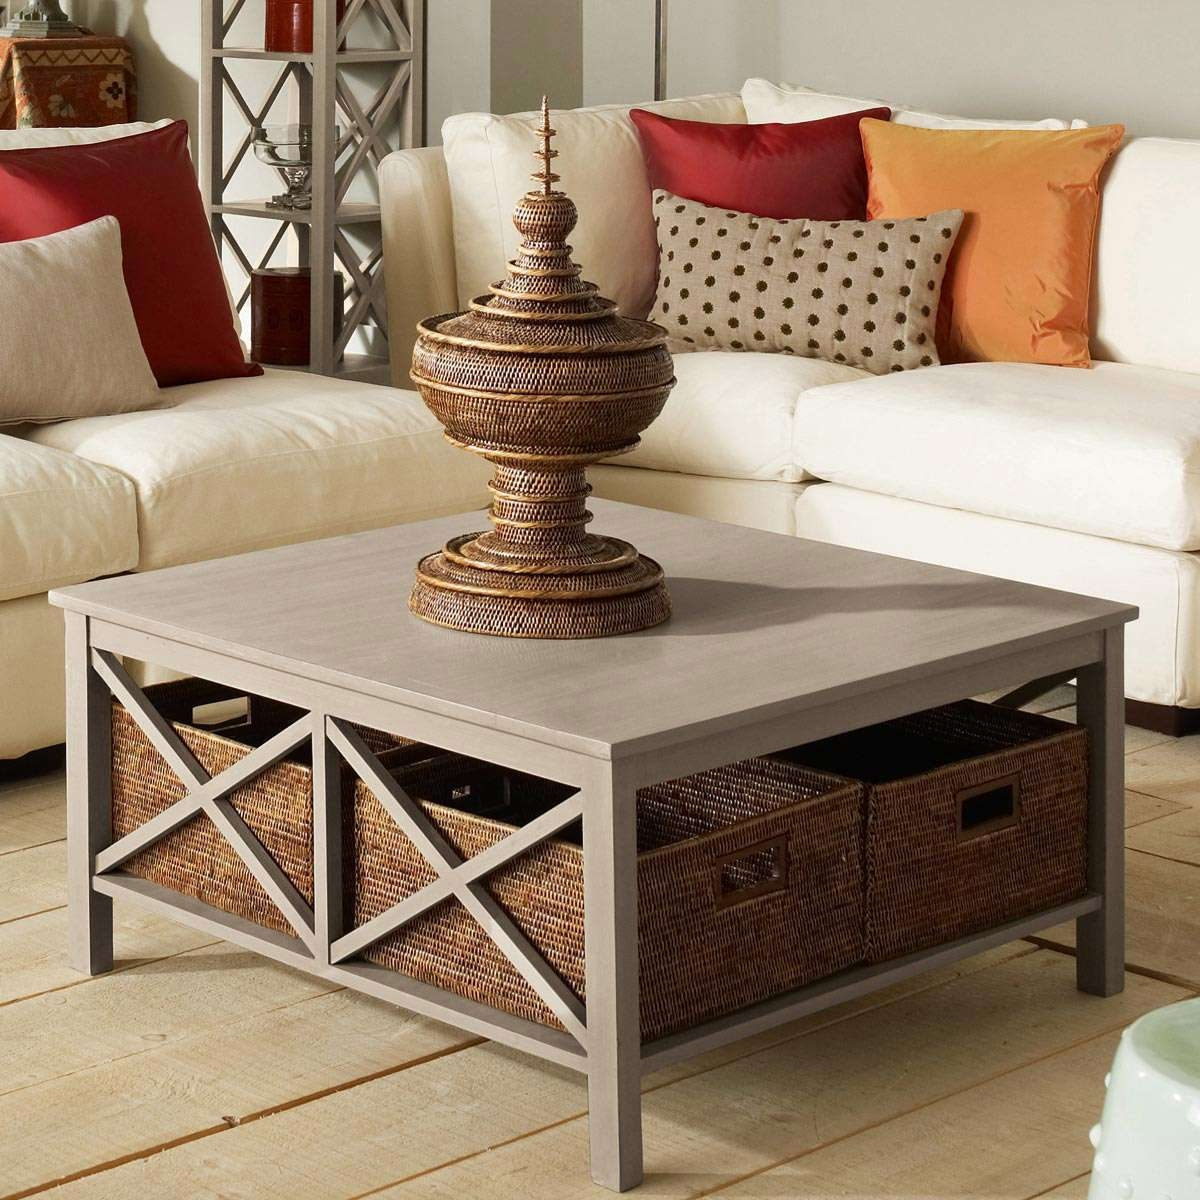 20 Best Ideas of Huge Square Coffee Tables